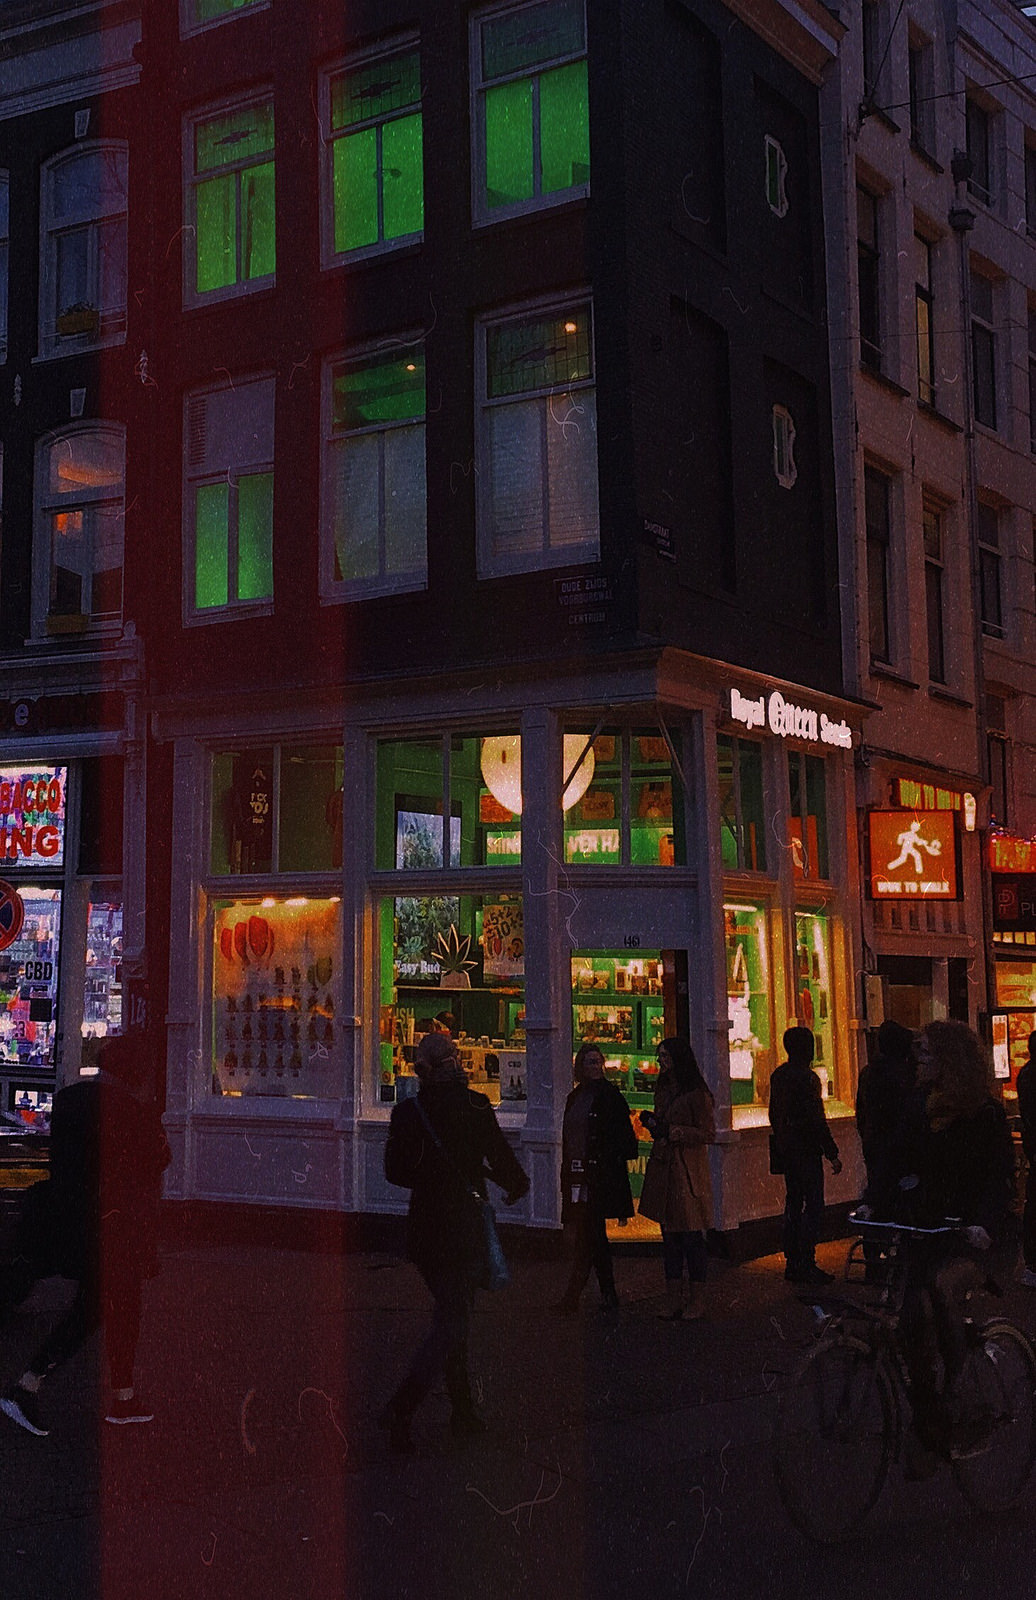 The streets of Amsterdam by night